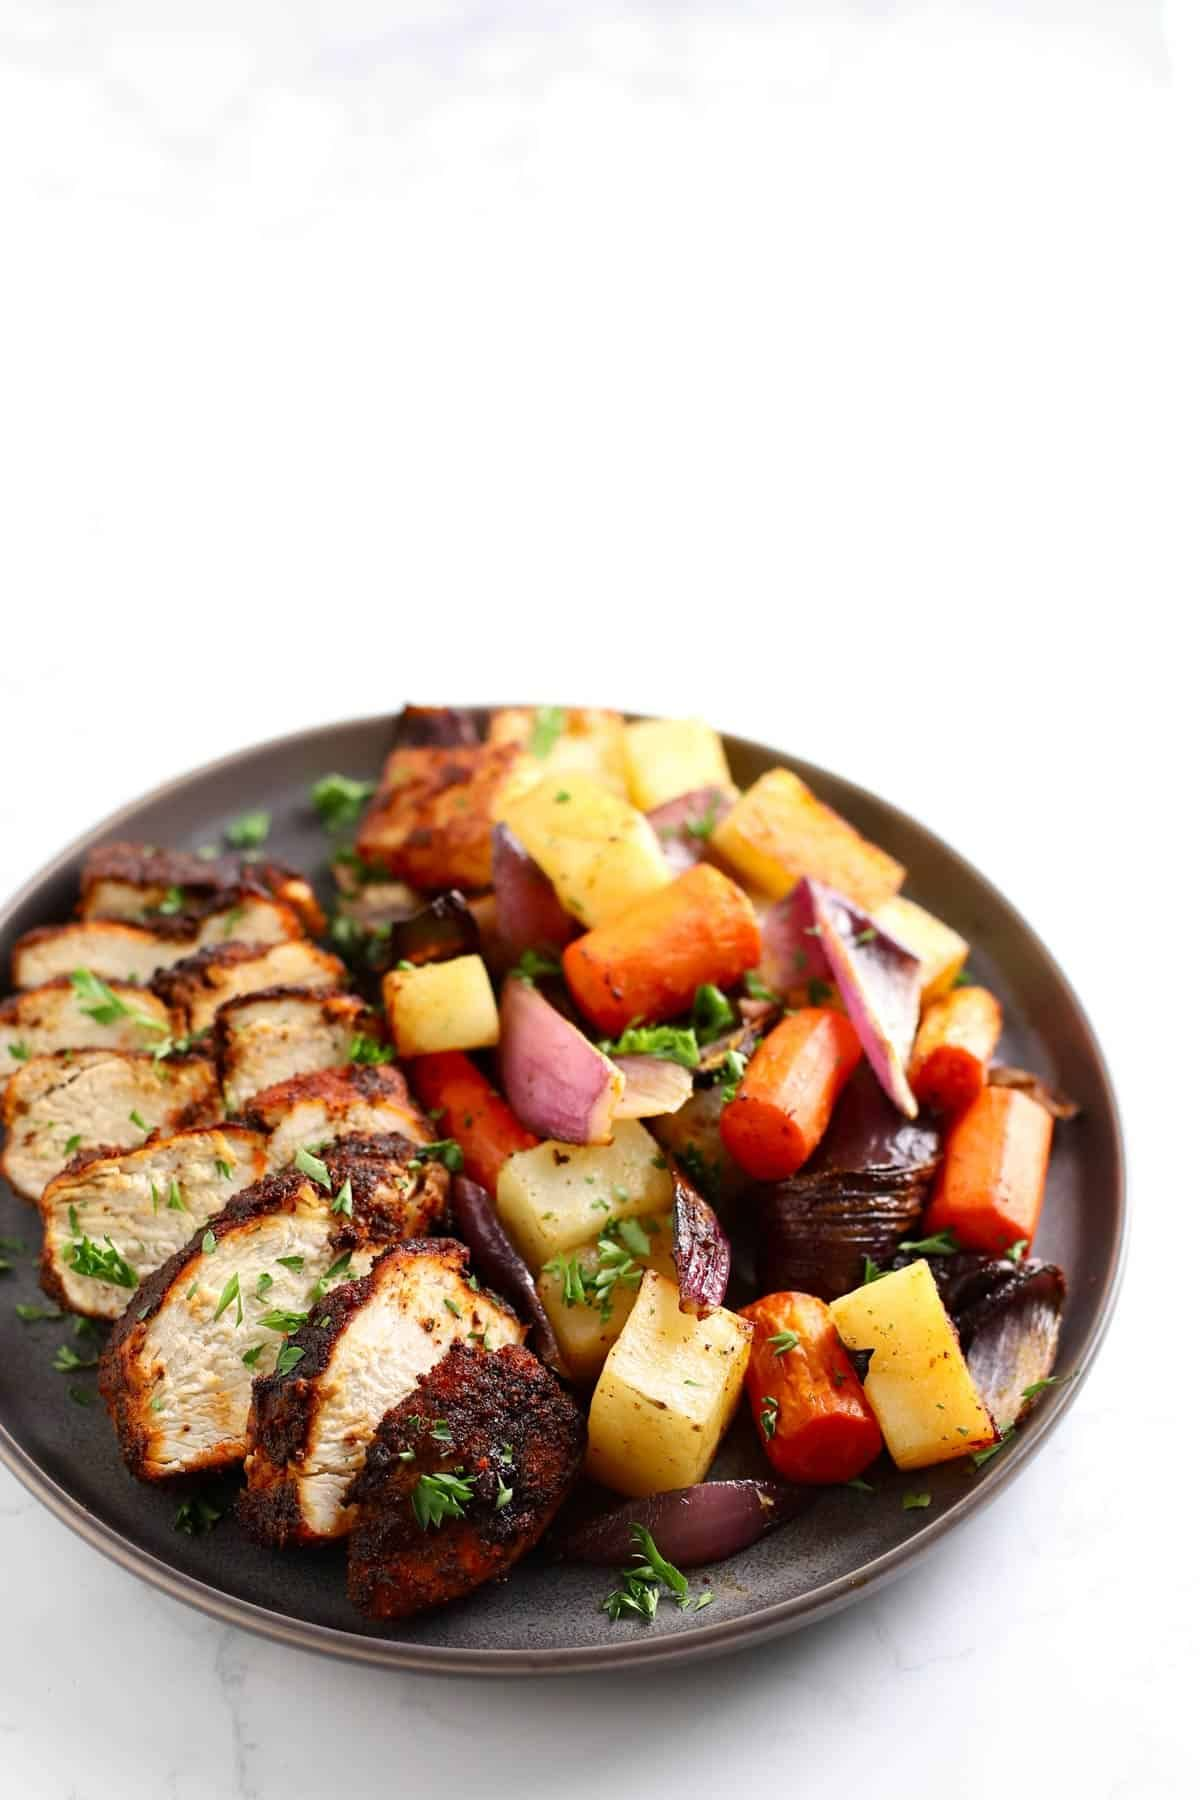 Air Fryer Spiced Chicken and Vegetables | Recipe in 2020 ...